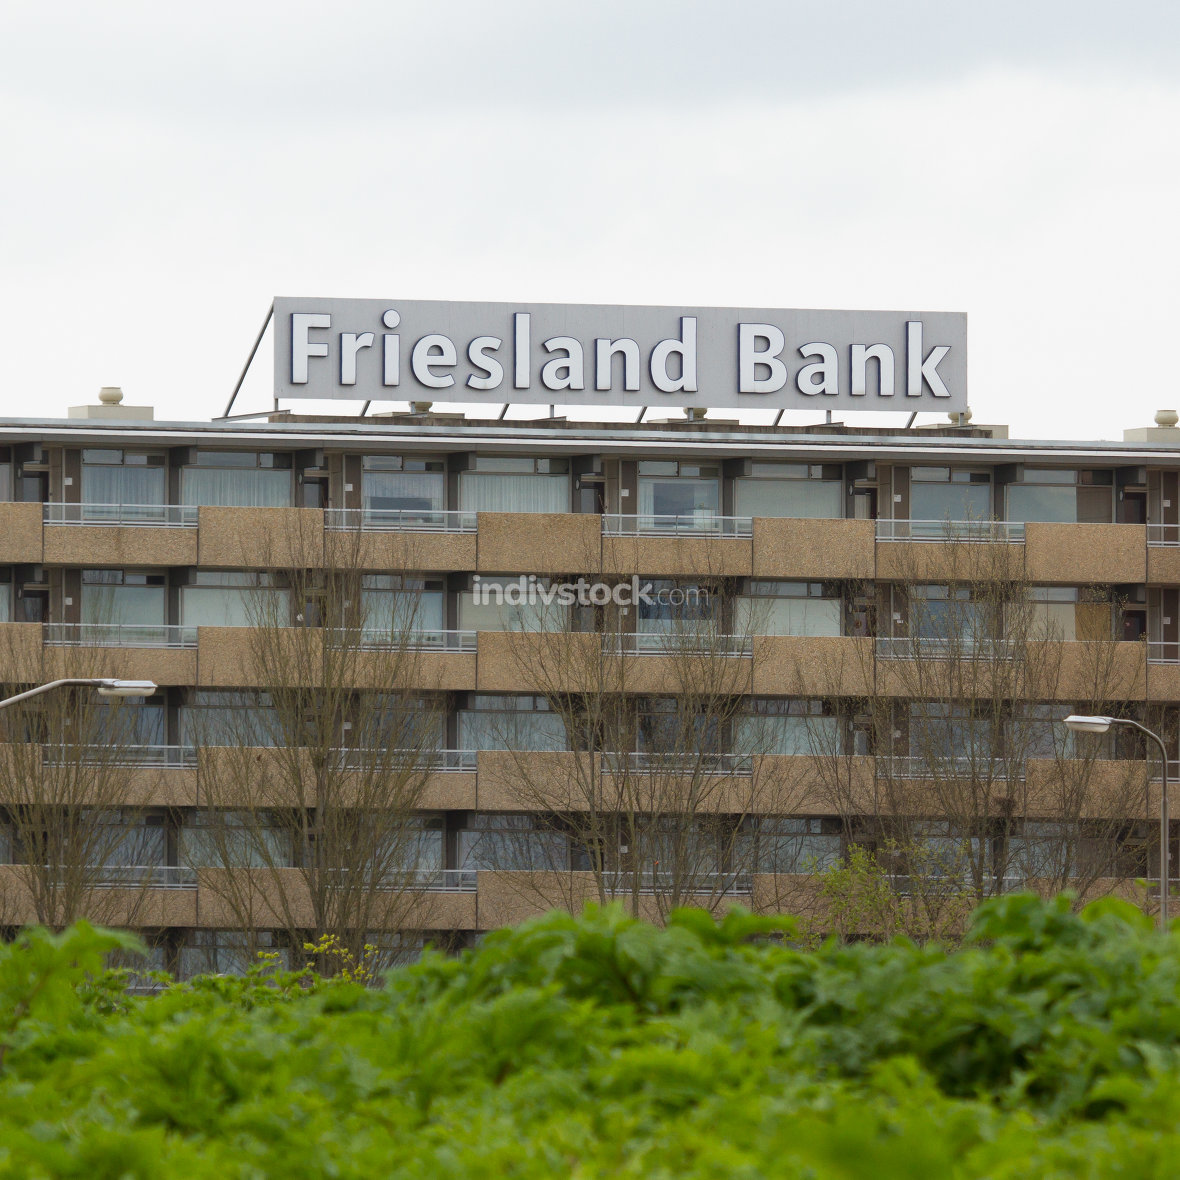 Large billboard of the Friesland Bank Mai 7, 2012 Leeuwarden,Friesland,Holland